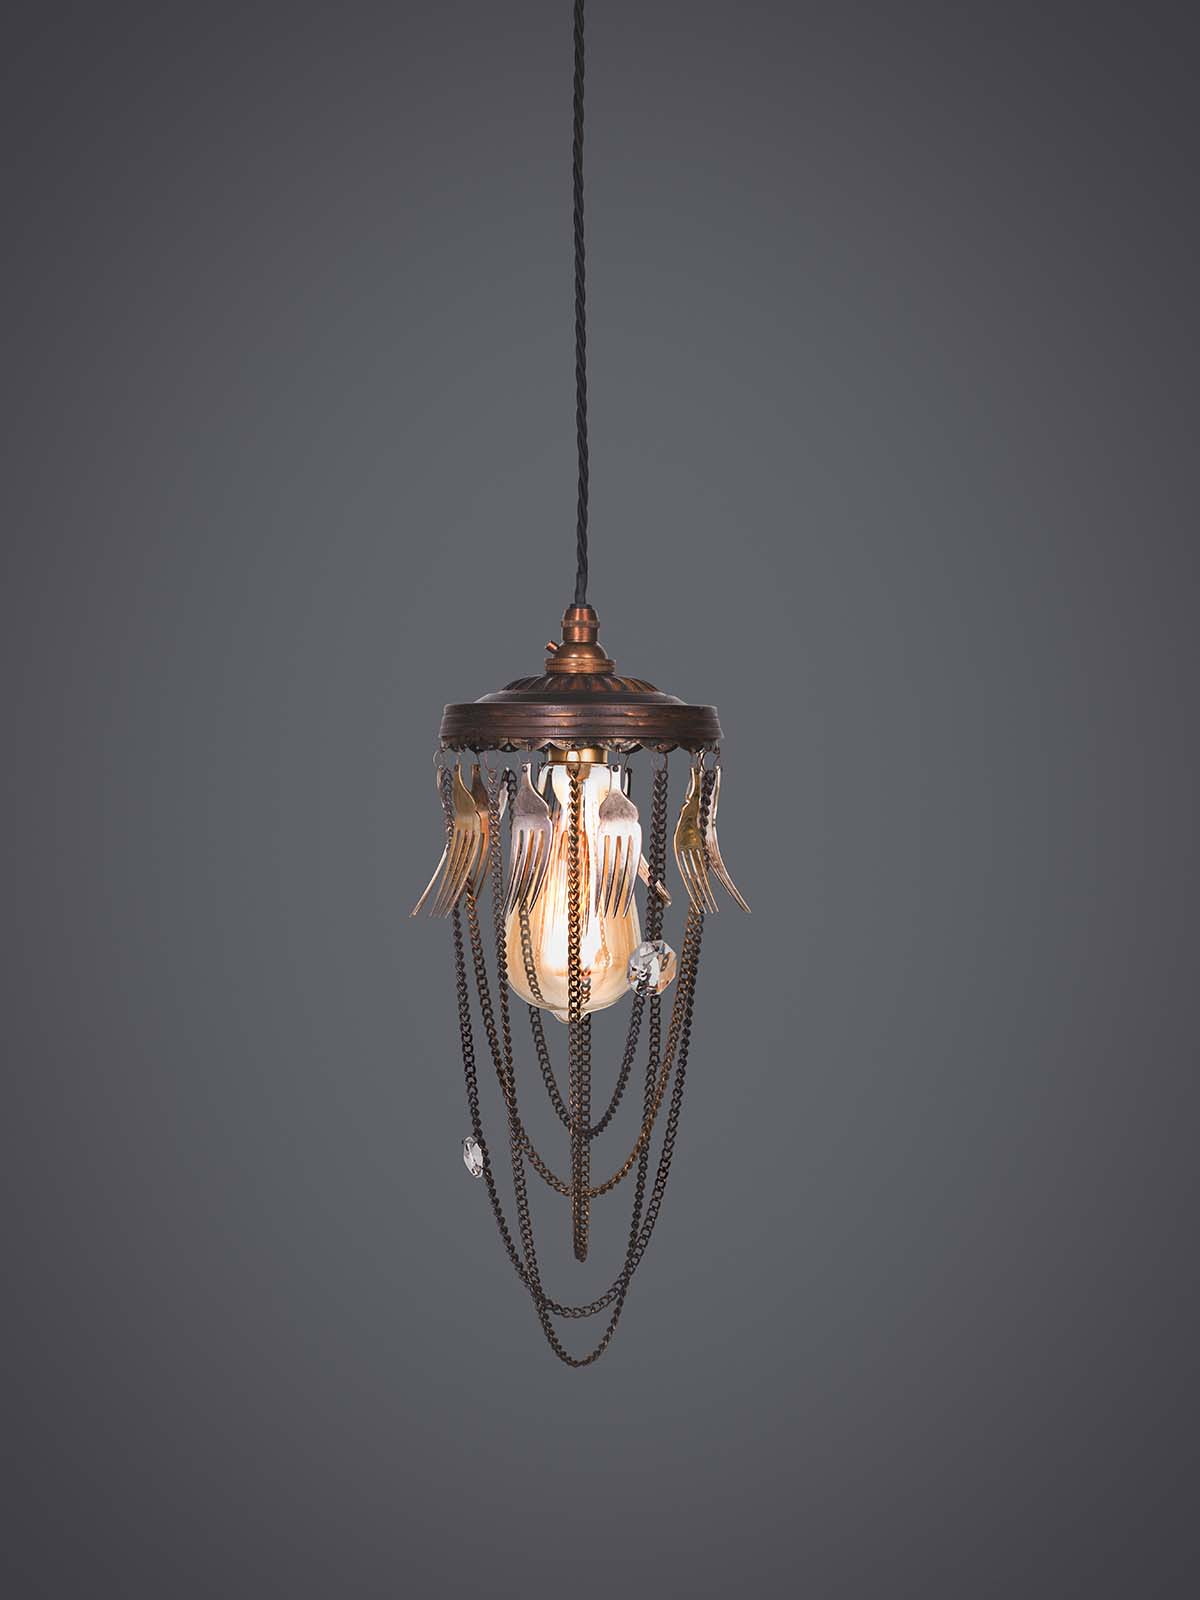 Ambrosia pendant lamp with recycled vintage forks.